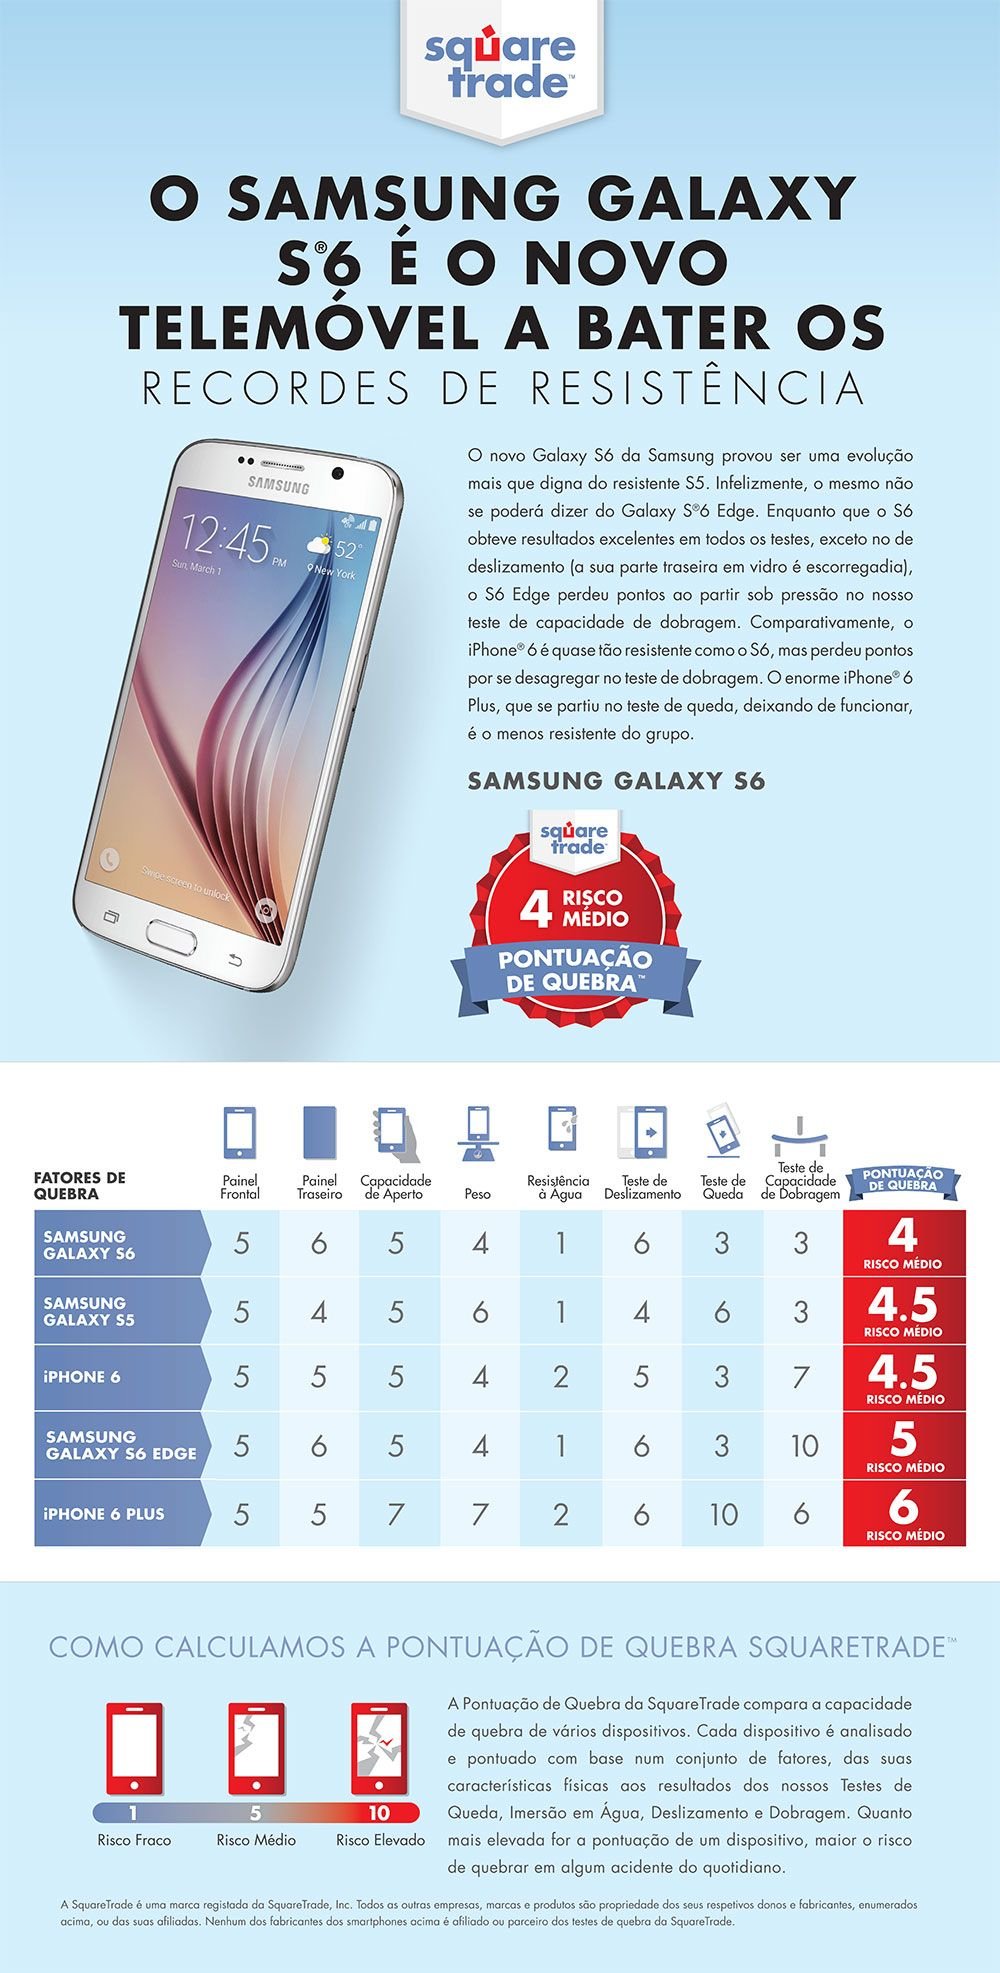 Samsung Galaxy S6 winner